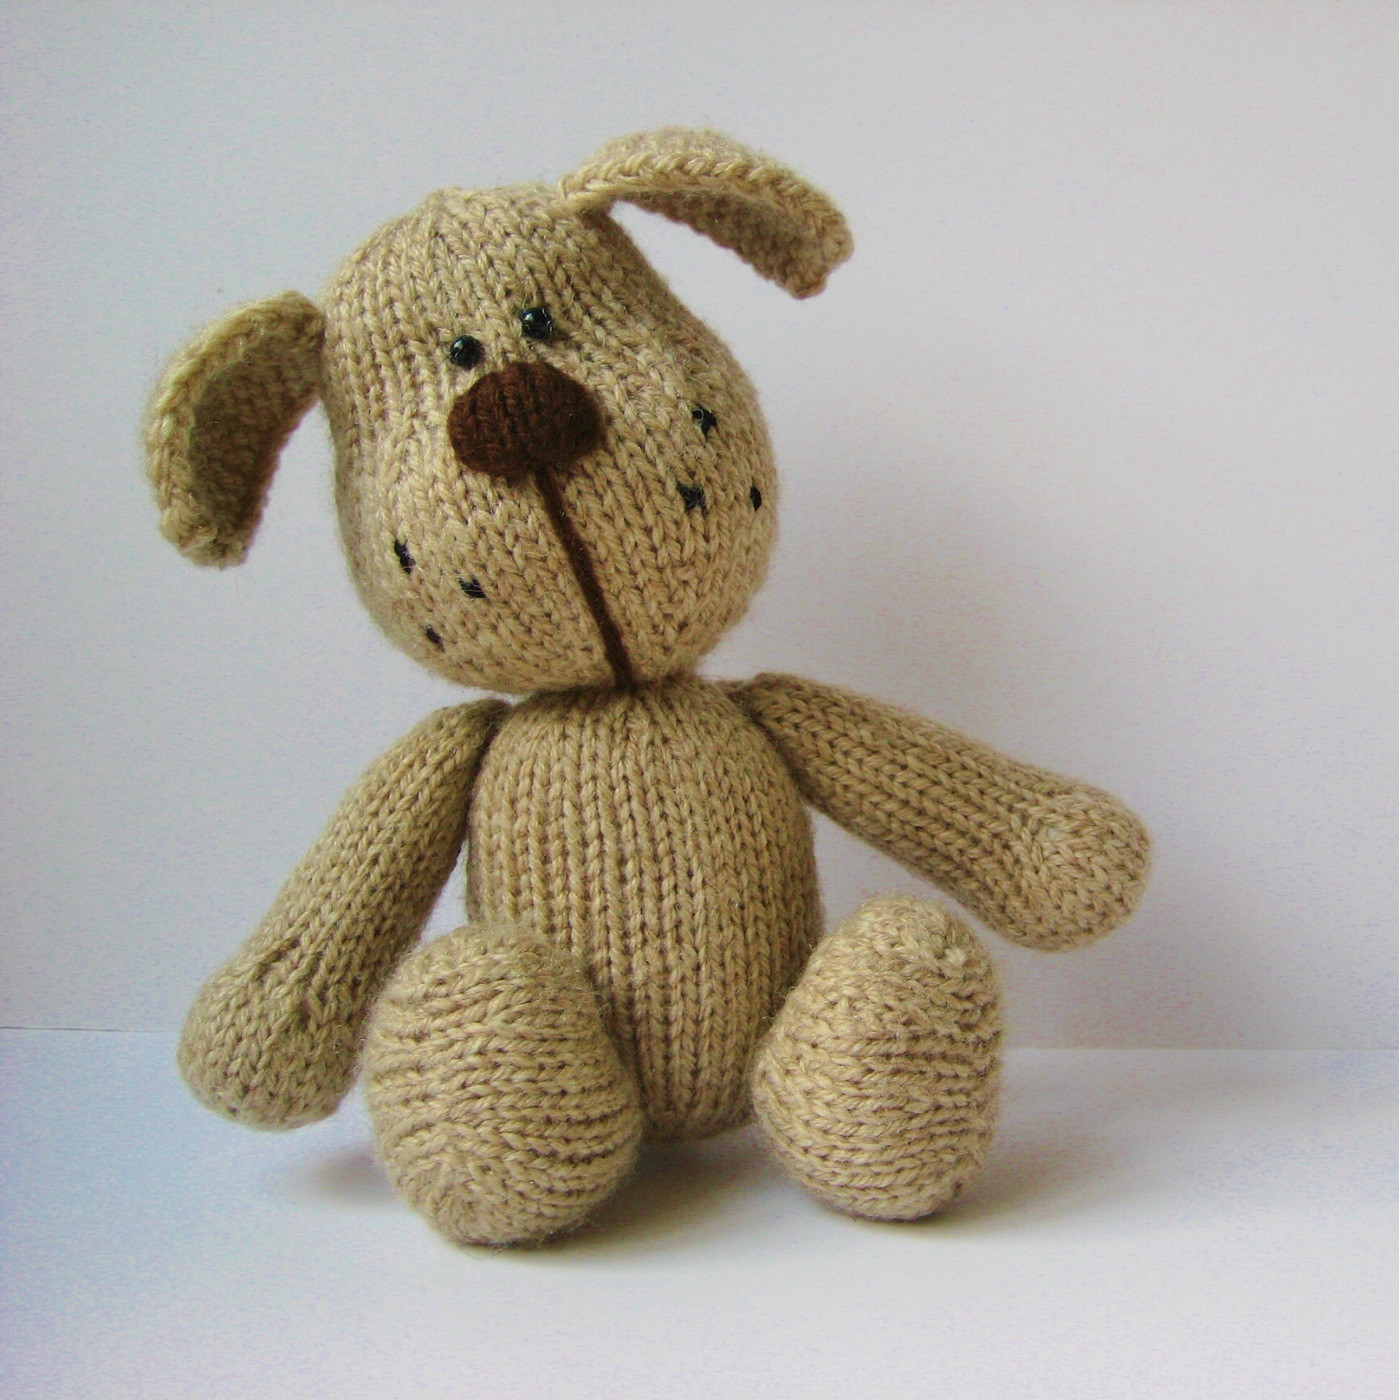 knitted dog toys free patterns Crochet and Knit